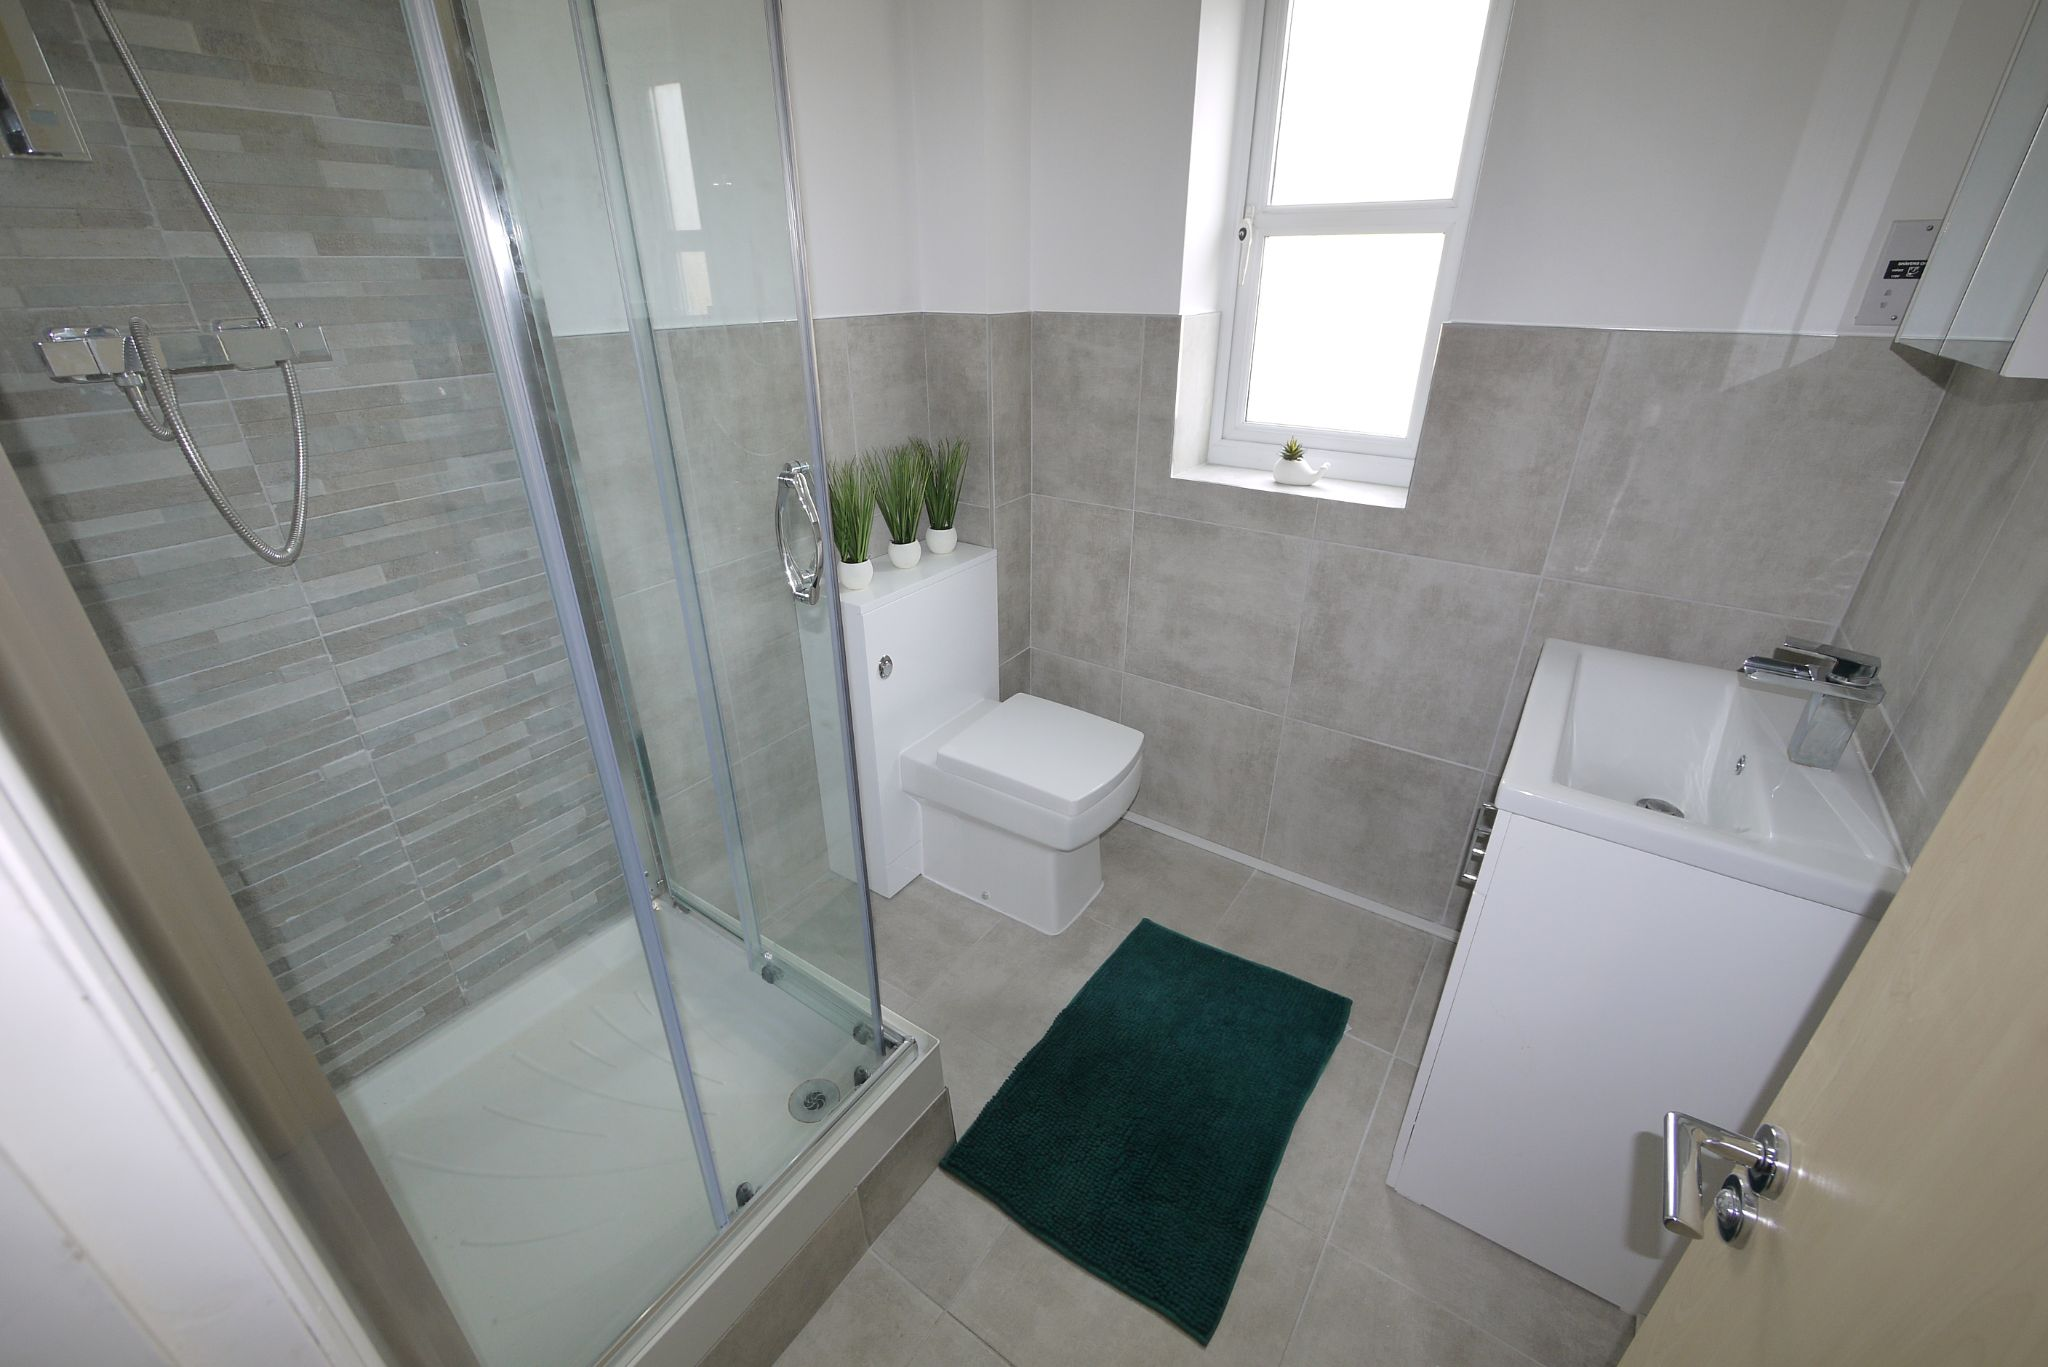 4 bedroom town house SSTC in Brighouse - Ensuite 1.